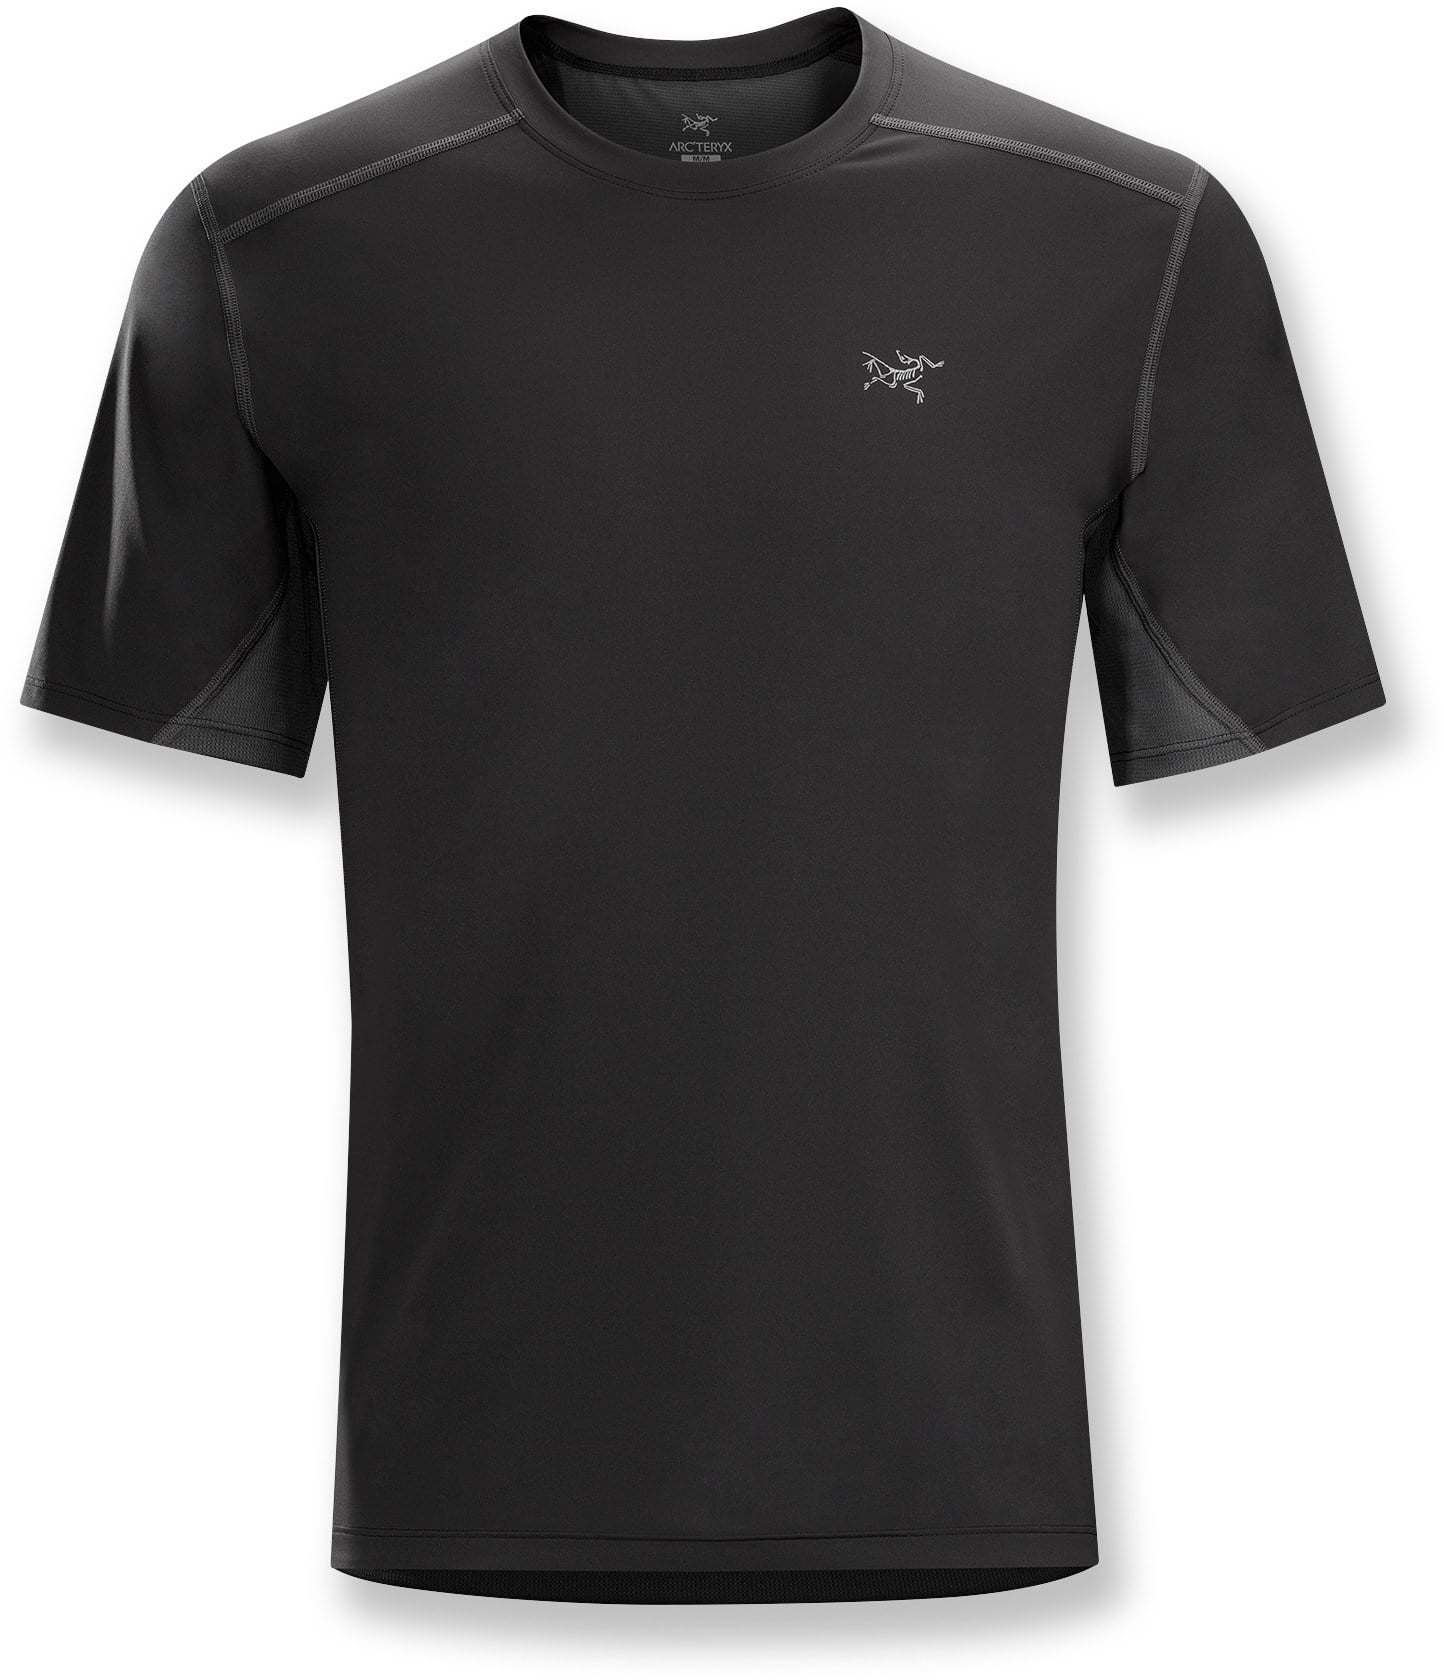 Arc'teryx Accelero Comp T-Shirt - Men's / carbon copy ONLY! $28.83 fs to store or on orders $50+ @ REI